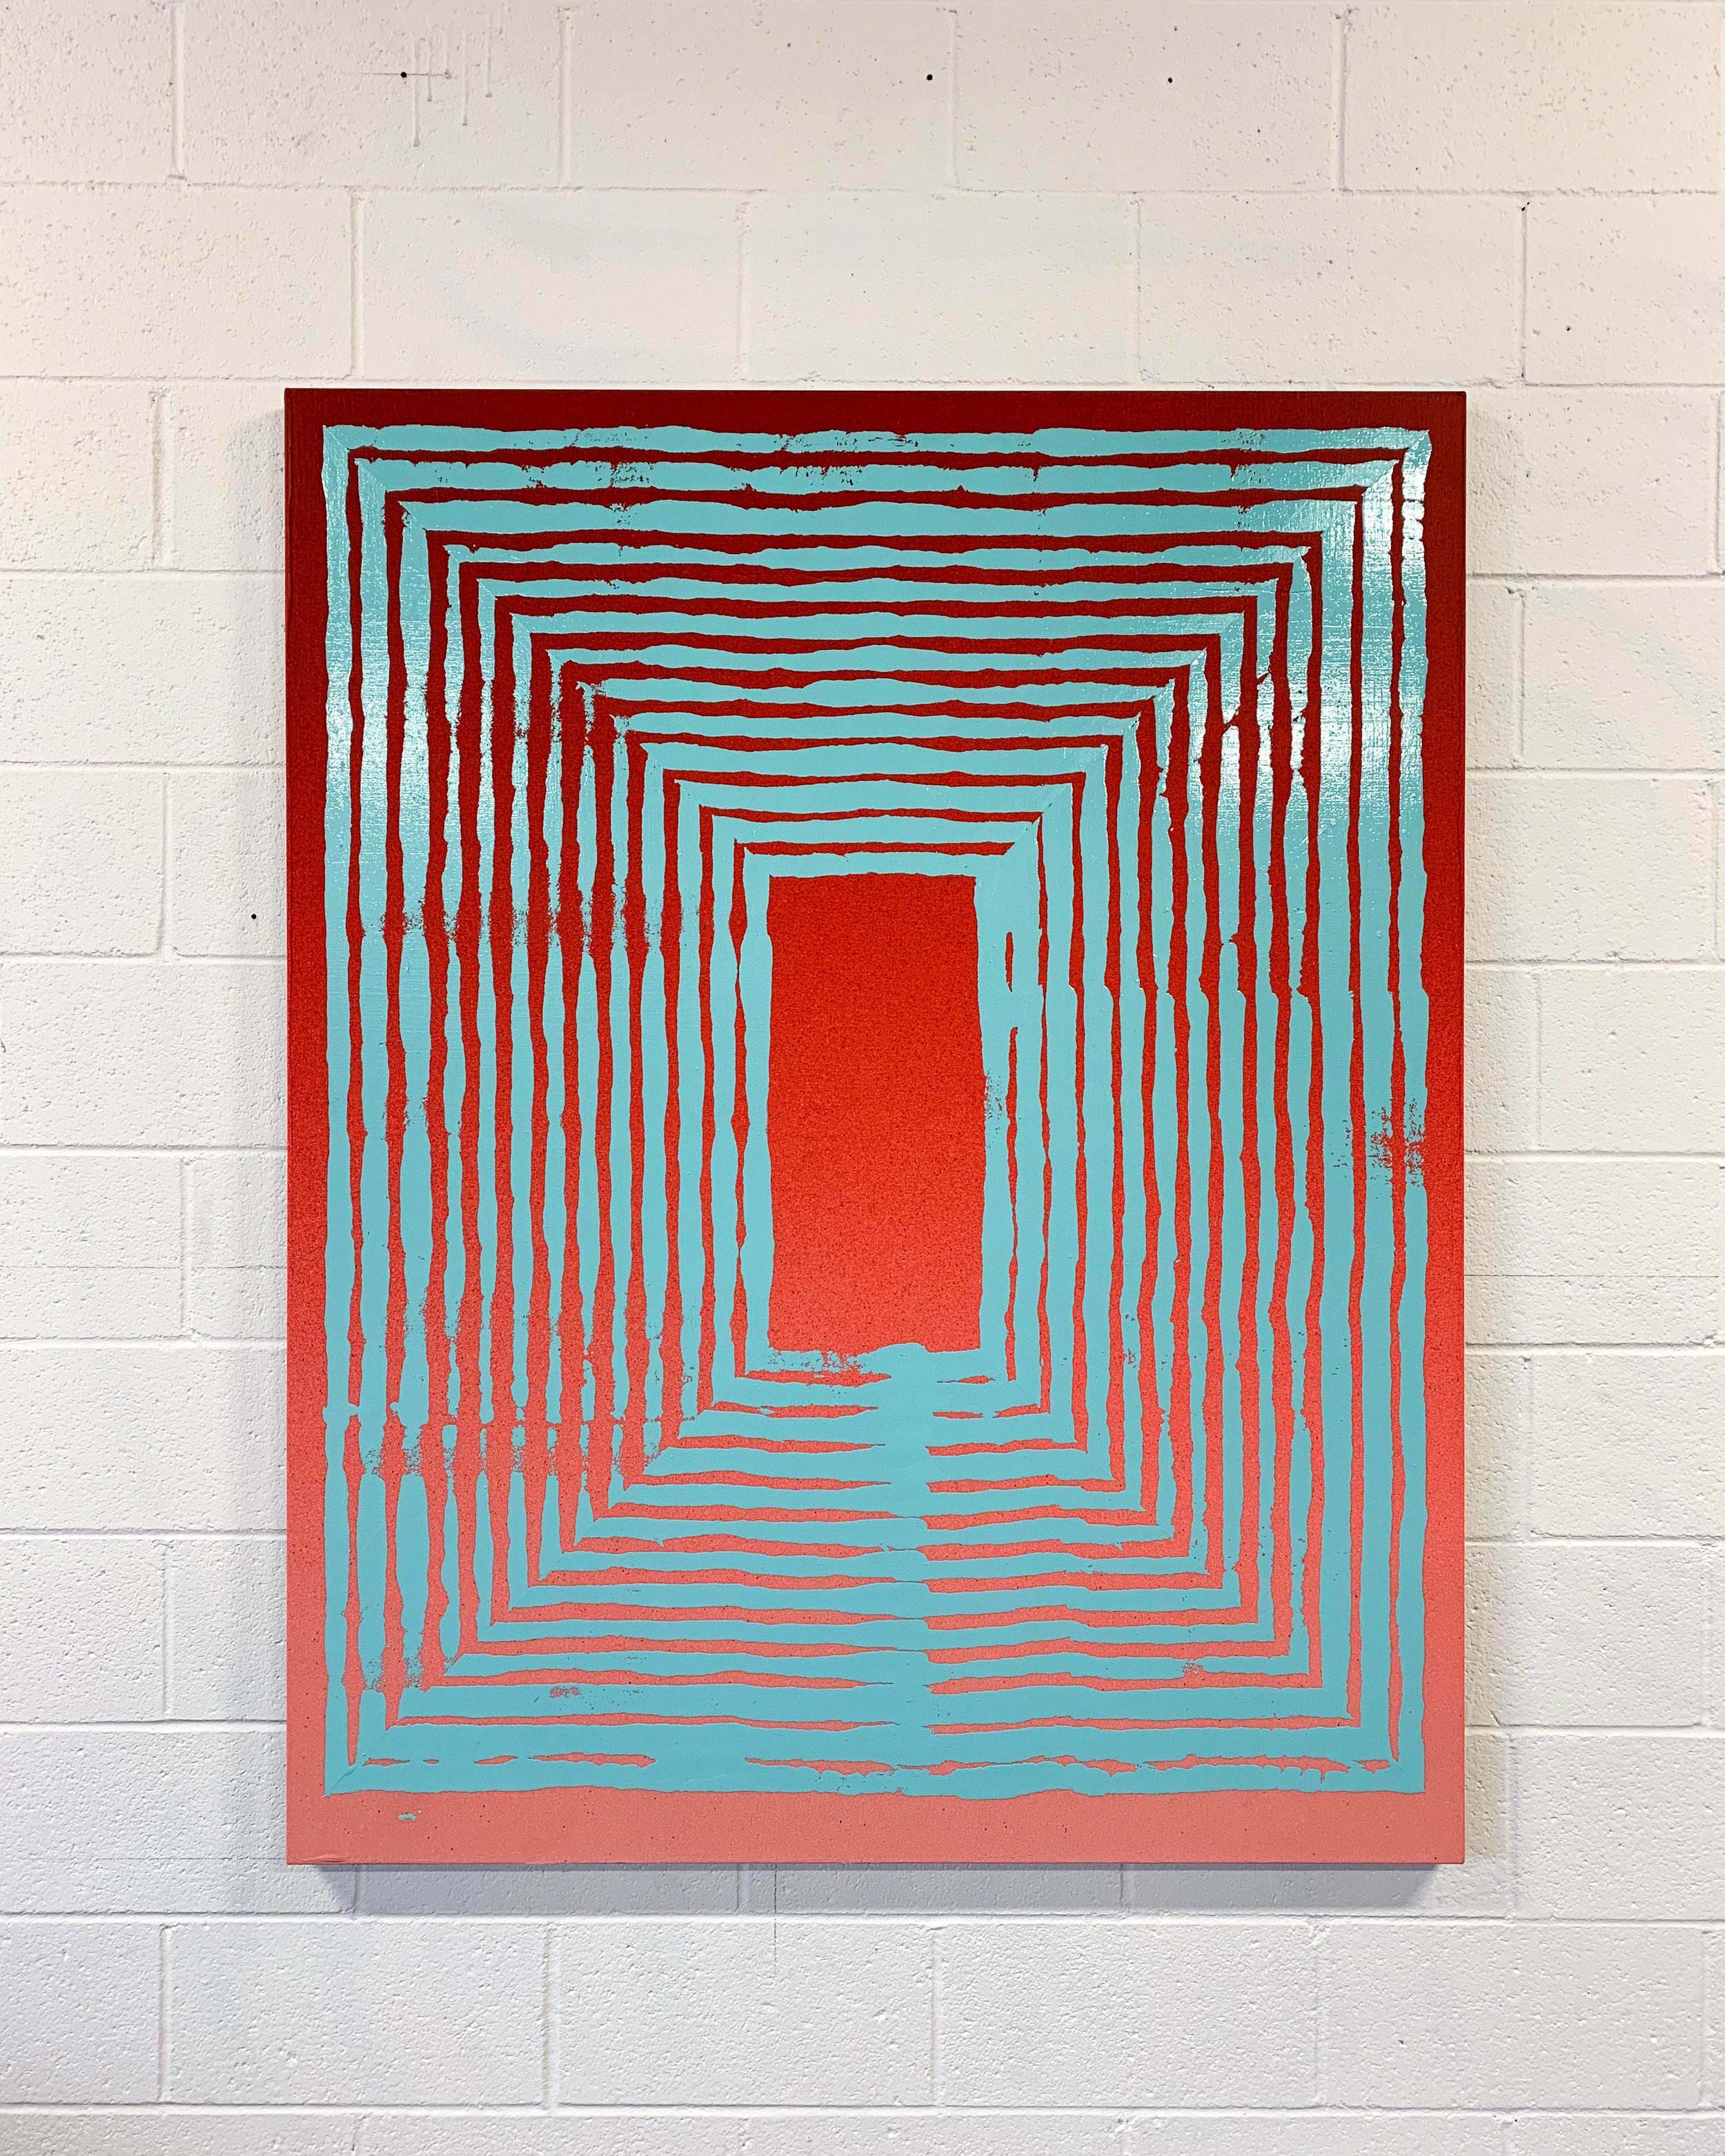 Jason REVOK  -  Hollow_Loop_small_1/19_A , 2019 Acrylic and synthetic polymer on canvas 60h x 48w inches